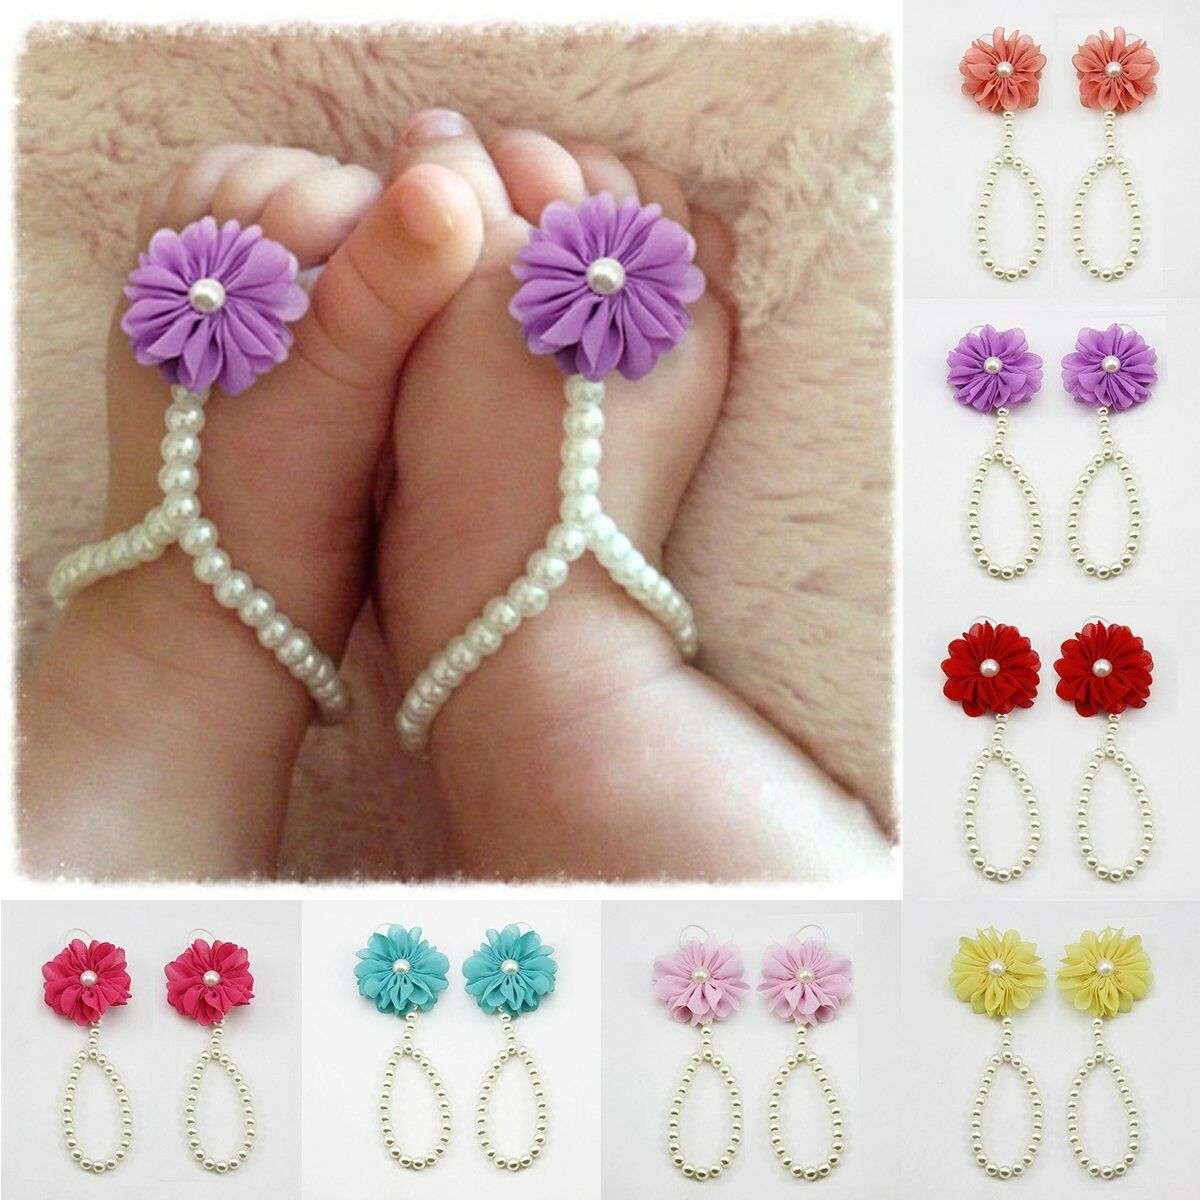 Summer Infant Sole Crib Barefoot Ring Flower Pearl Shoes Sandals For Kids Girl a 1